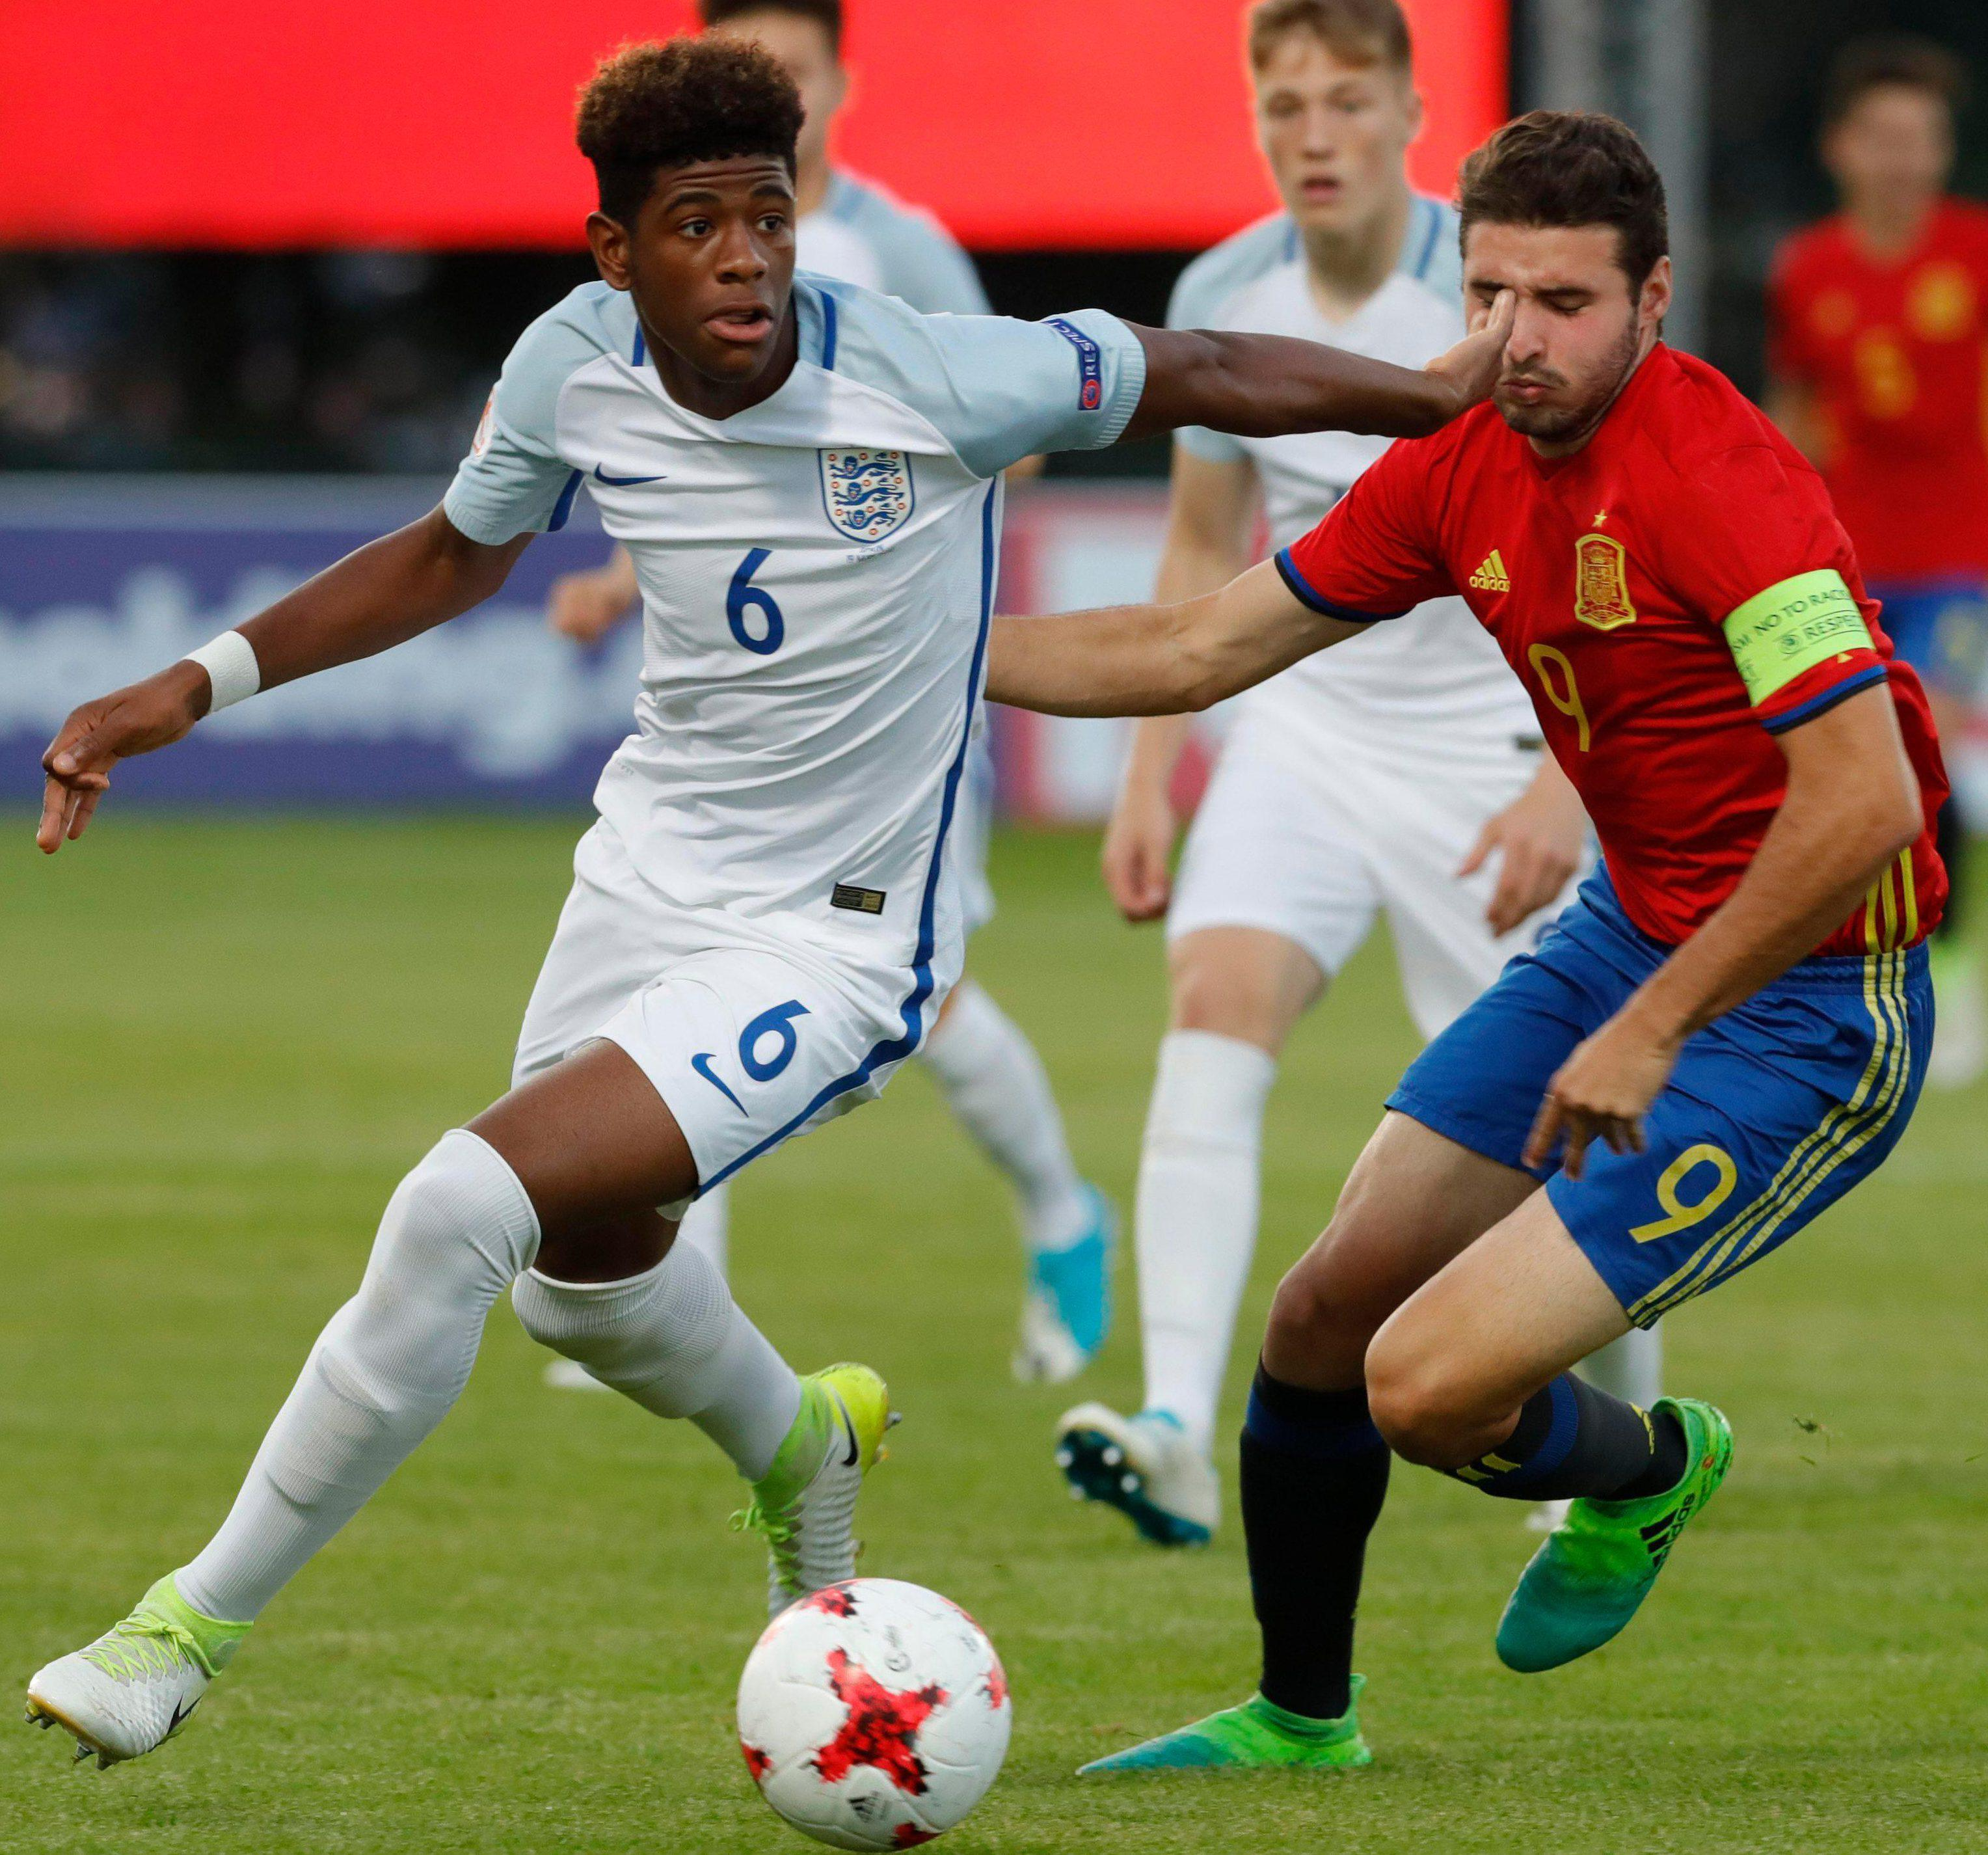 The game was one in the eye for England's youngsters, and literally one in the eye for some Spain players